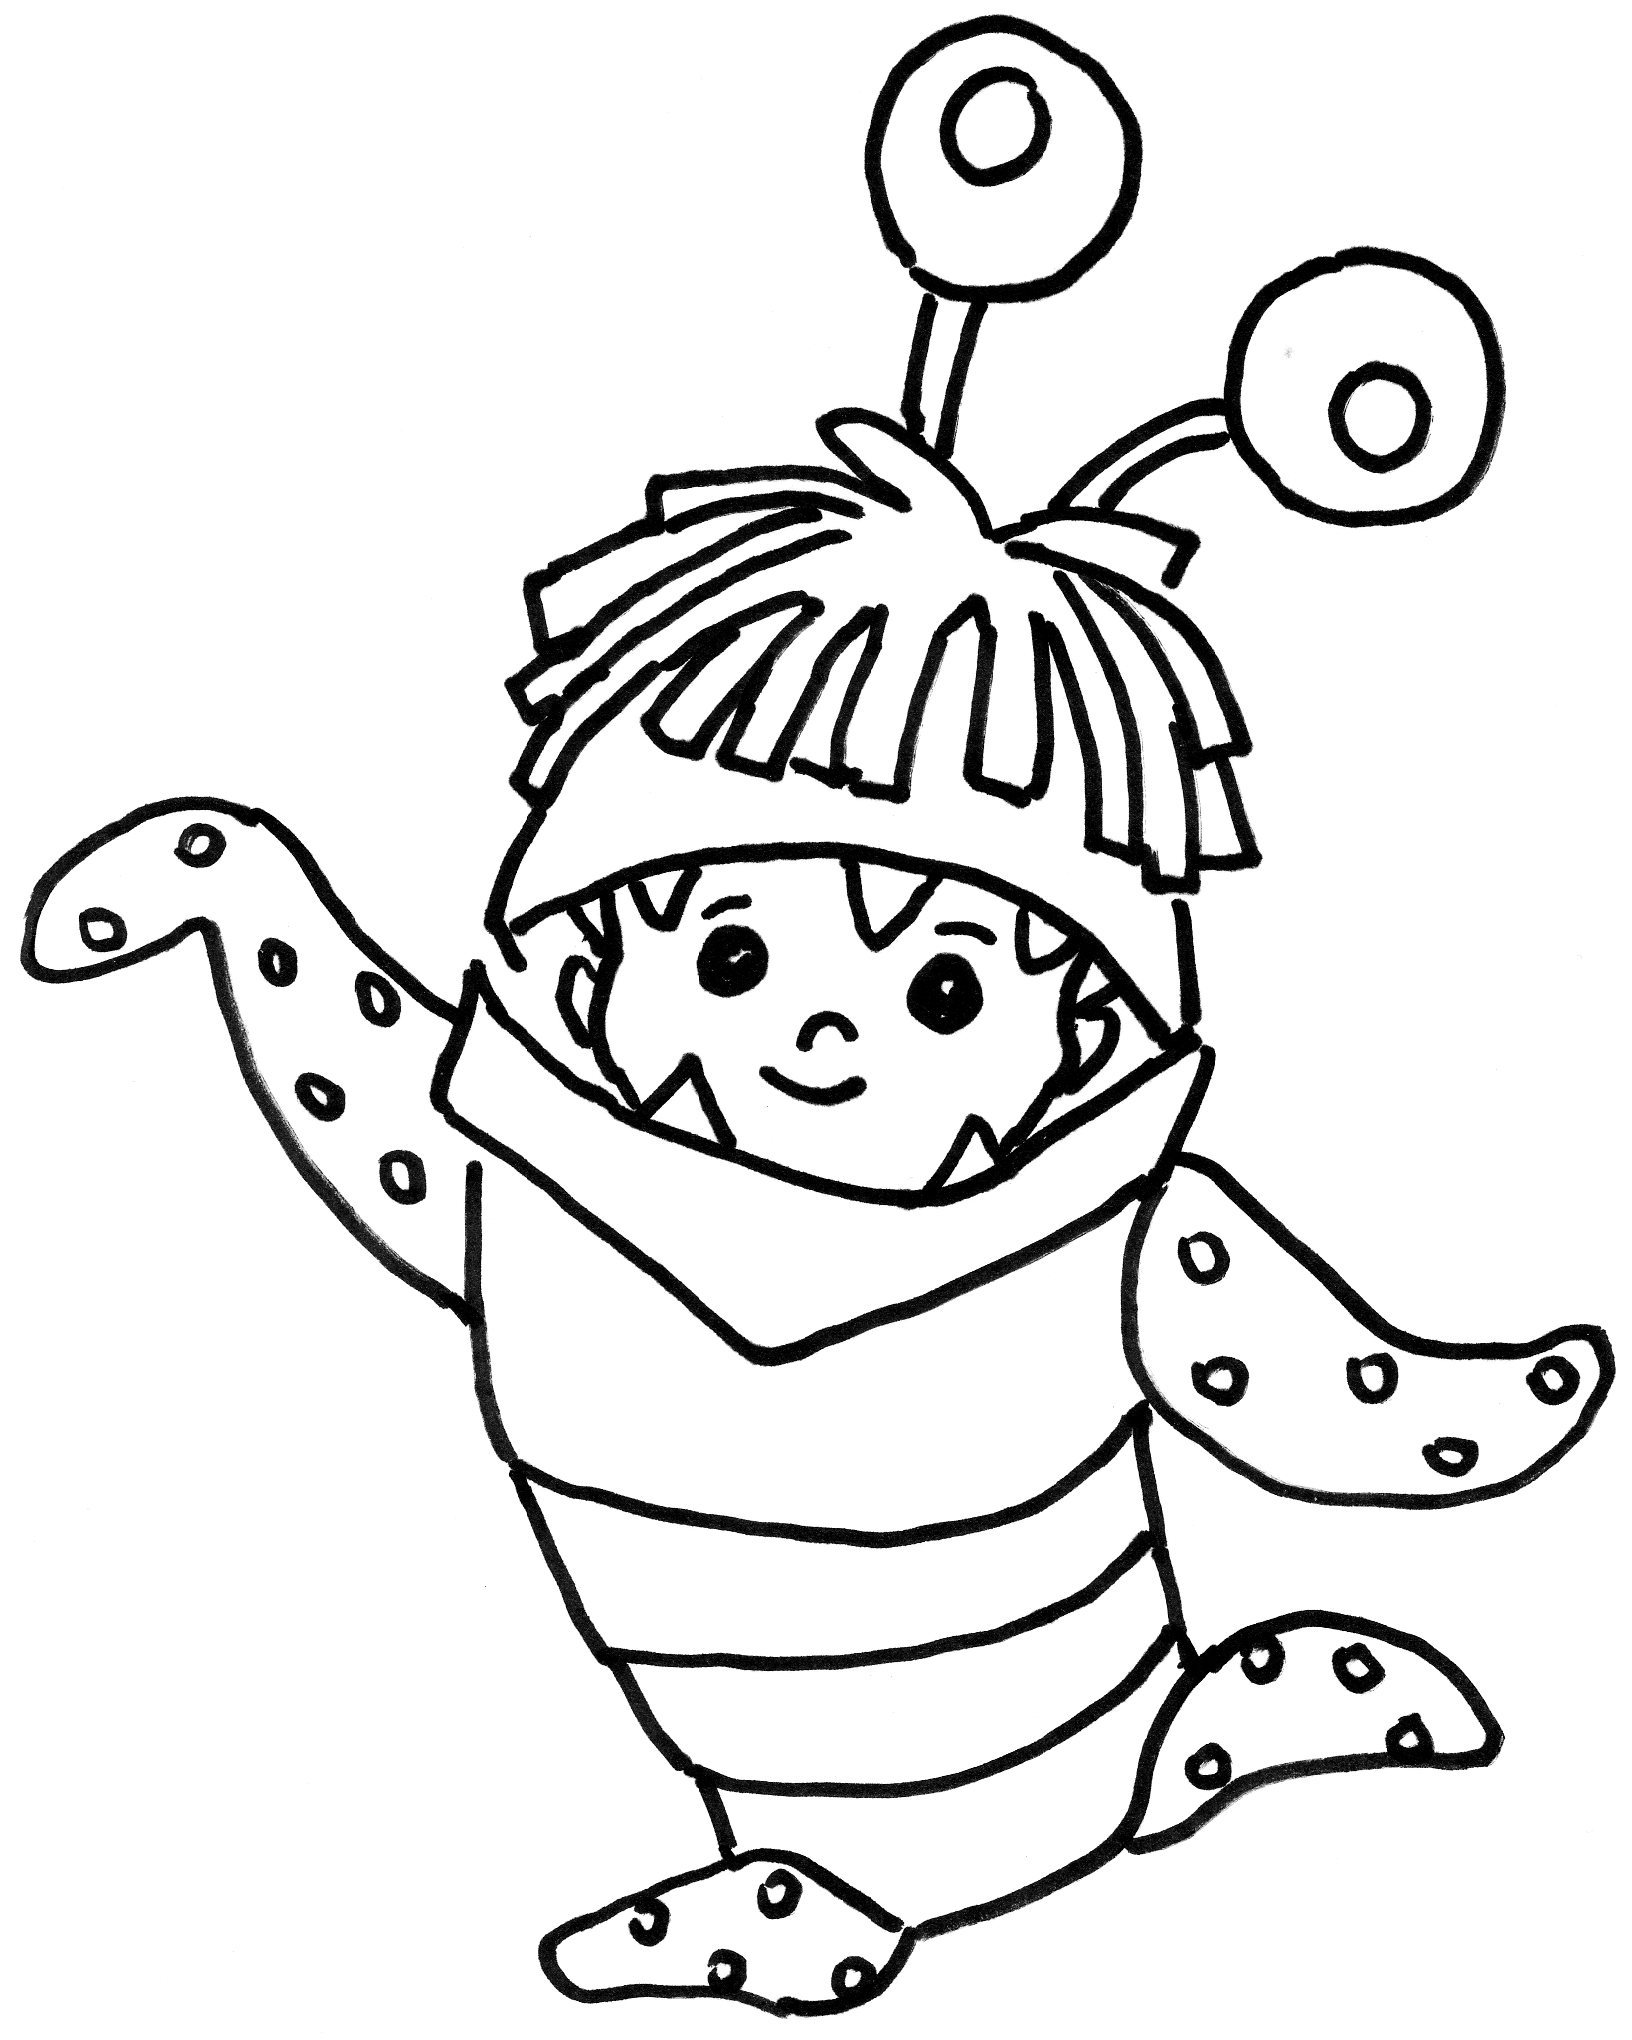 Disney Coloring Pages Monsters Inc at GetDrawings.com | Free ...